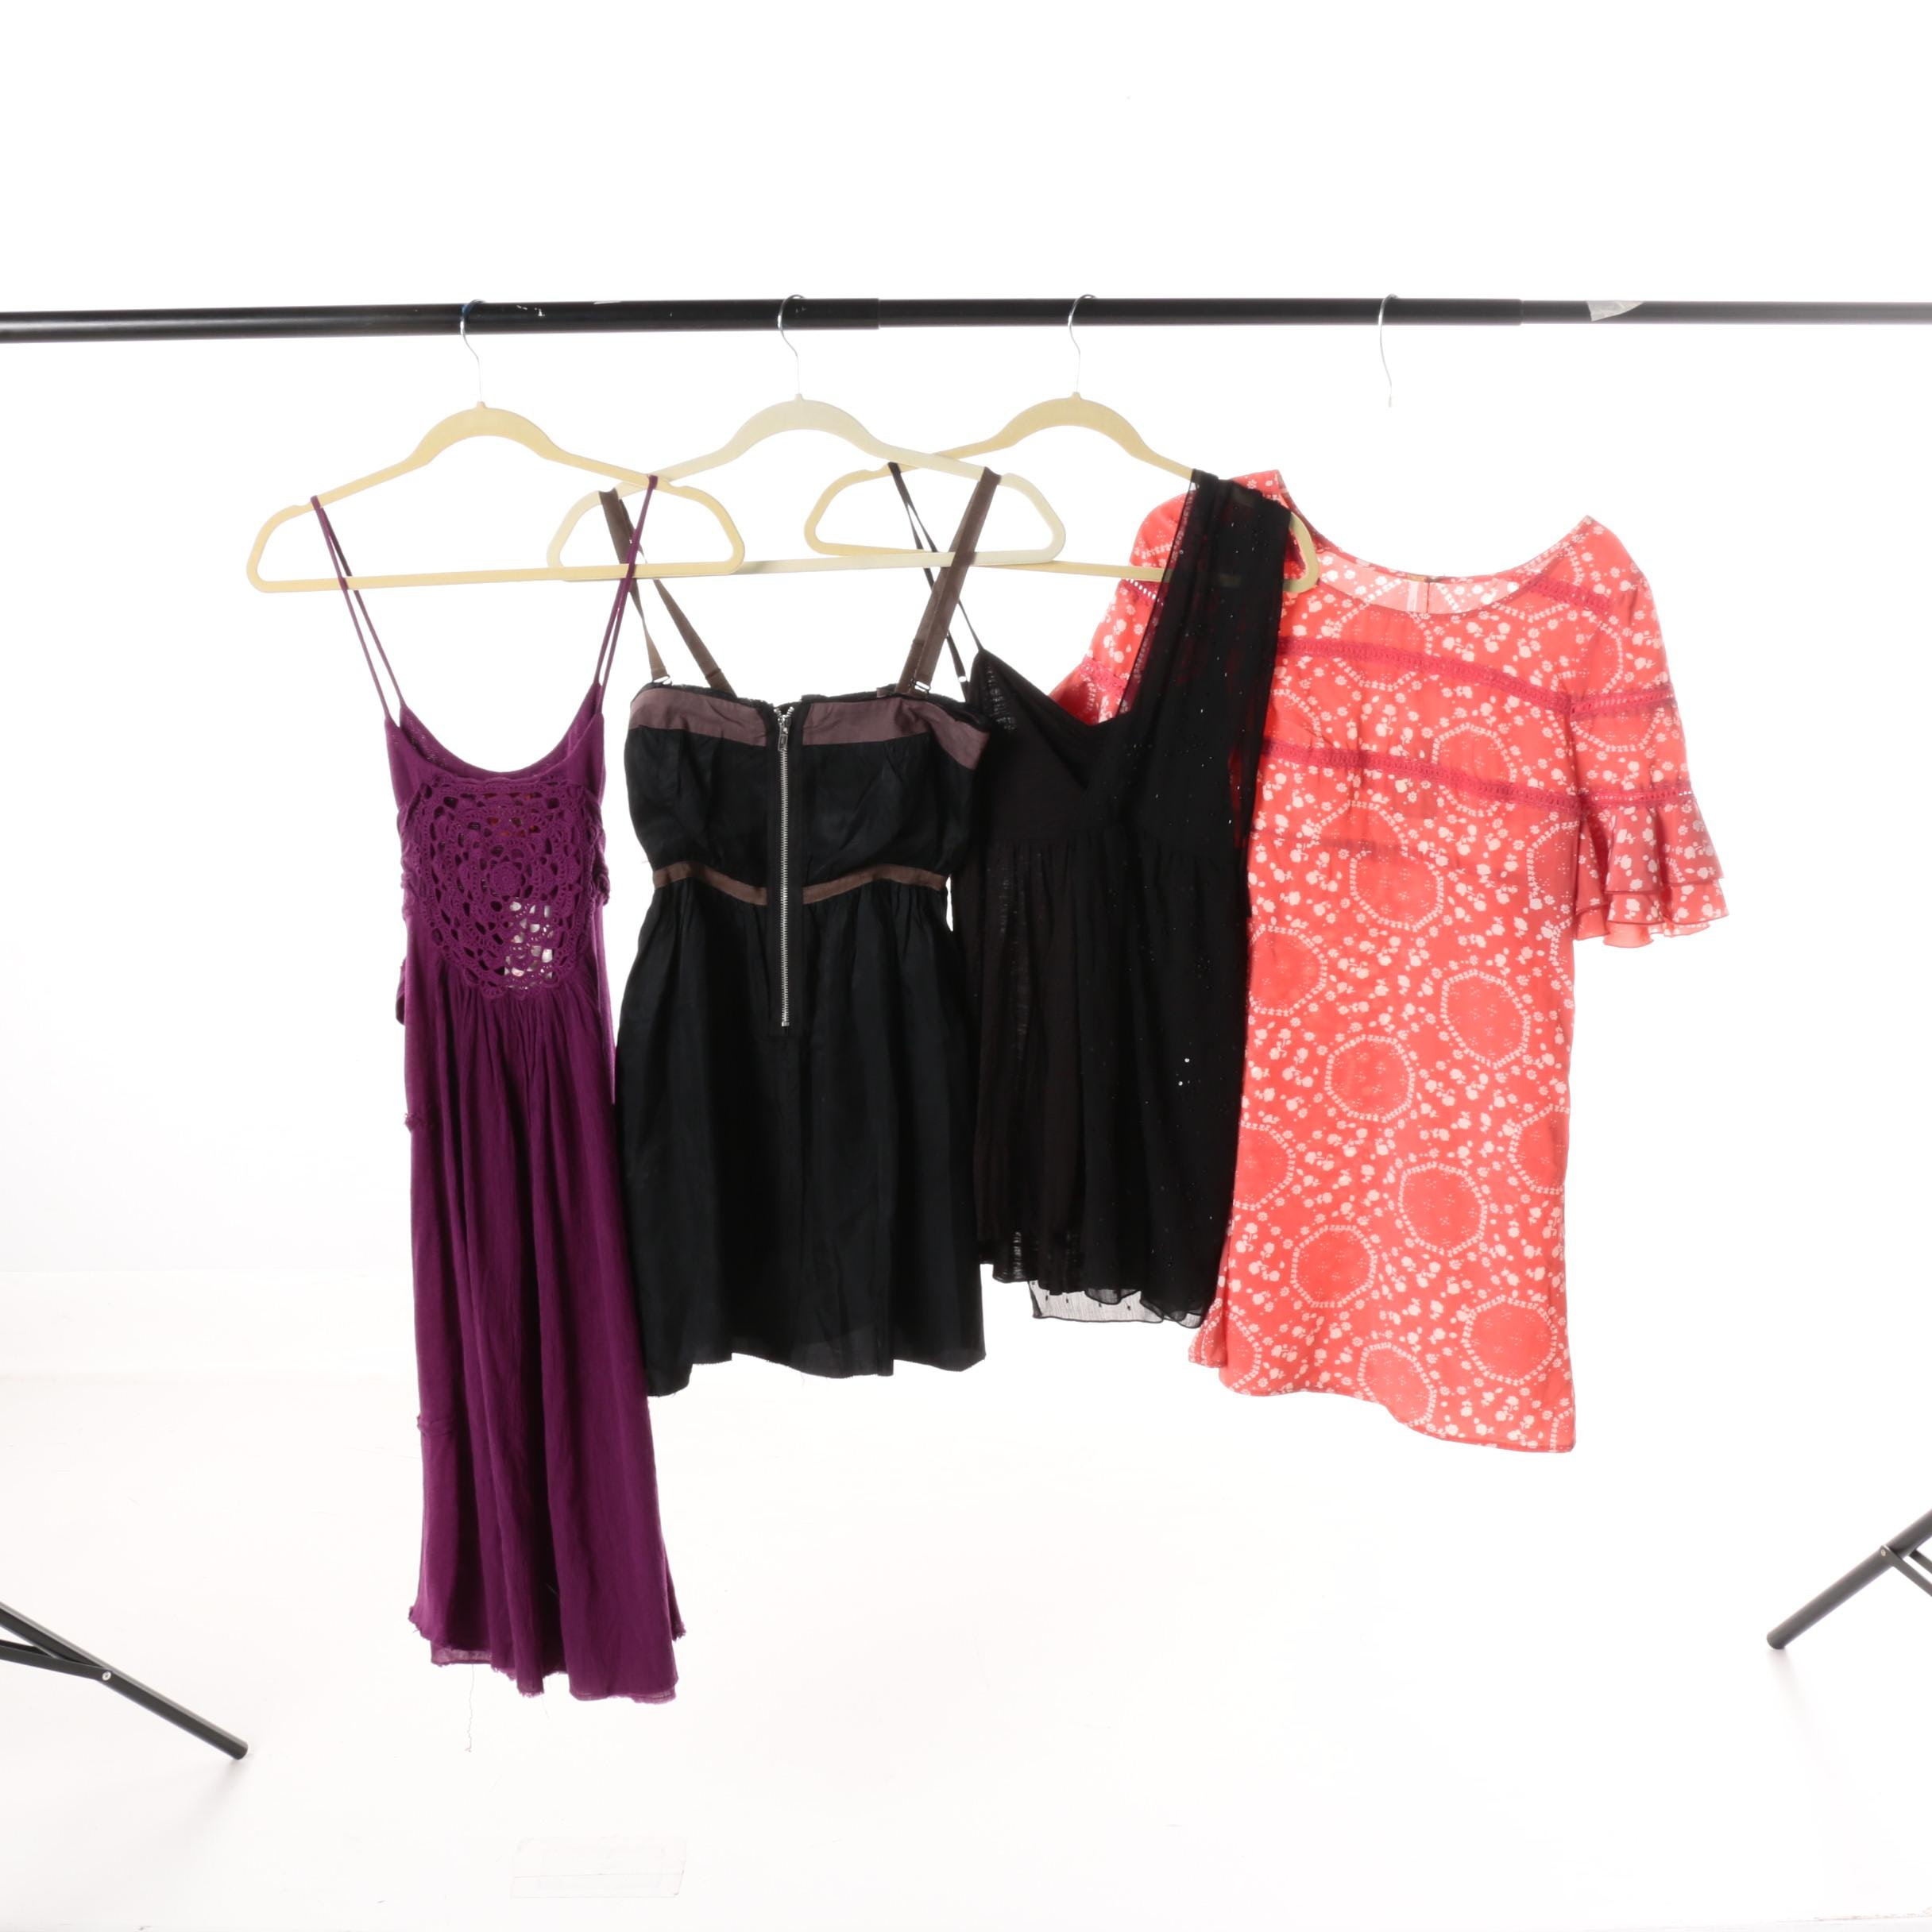 Women's Free People Mini-Dresses and Tops